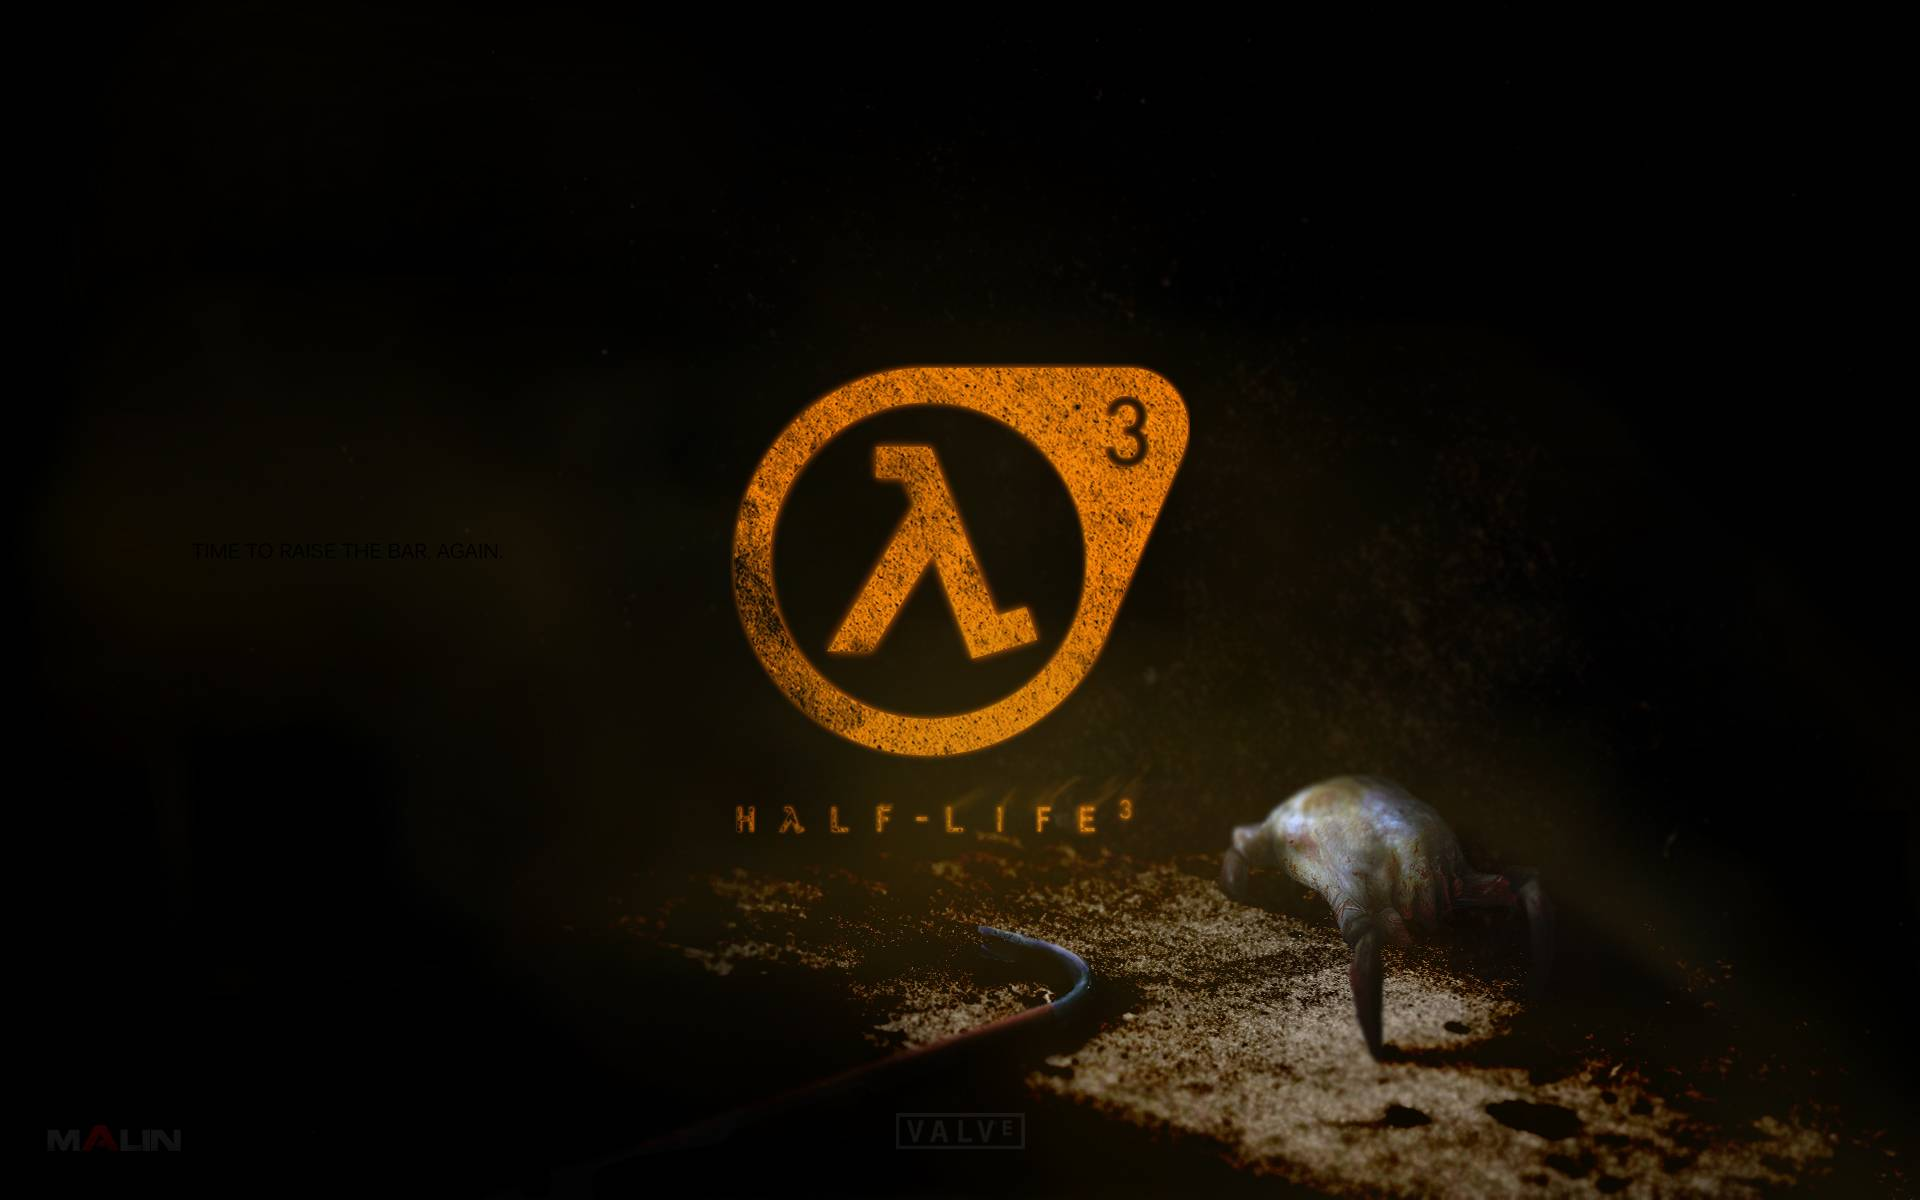 HALF_LIFE_3_WALLPAPERS_IN_HD.jpg